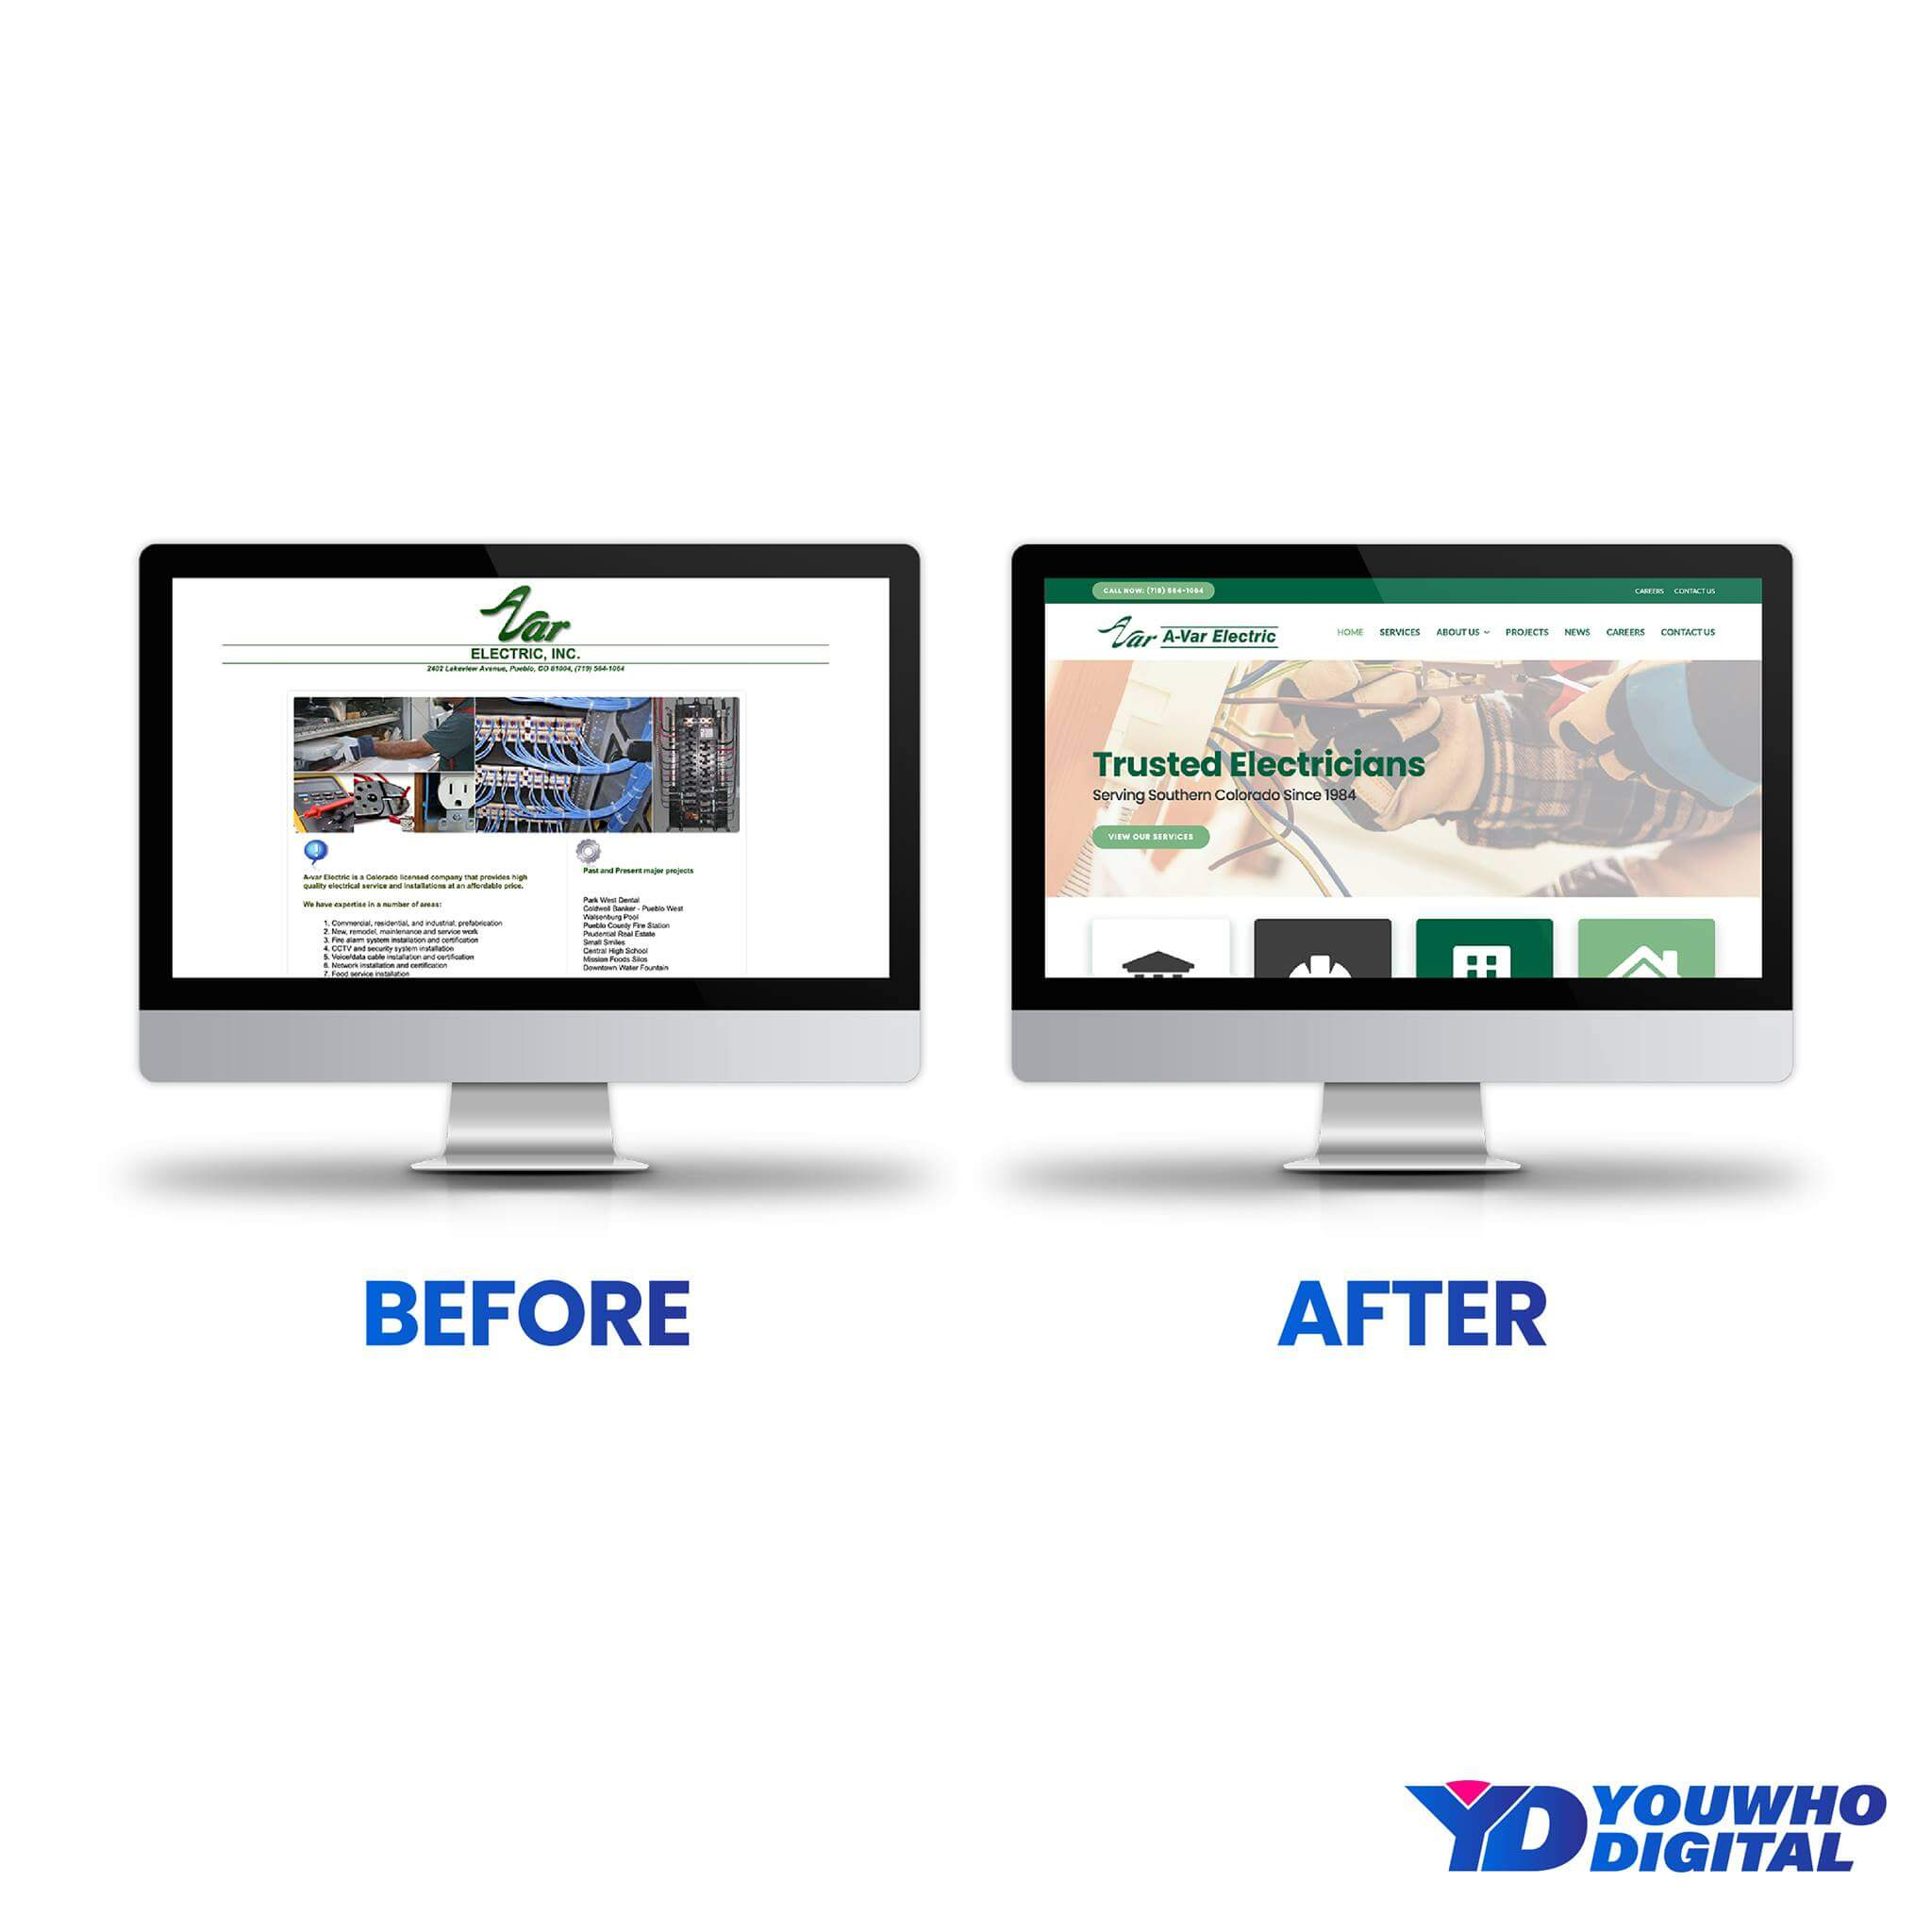 Top Small Business Website Design Company | Youwho Digital